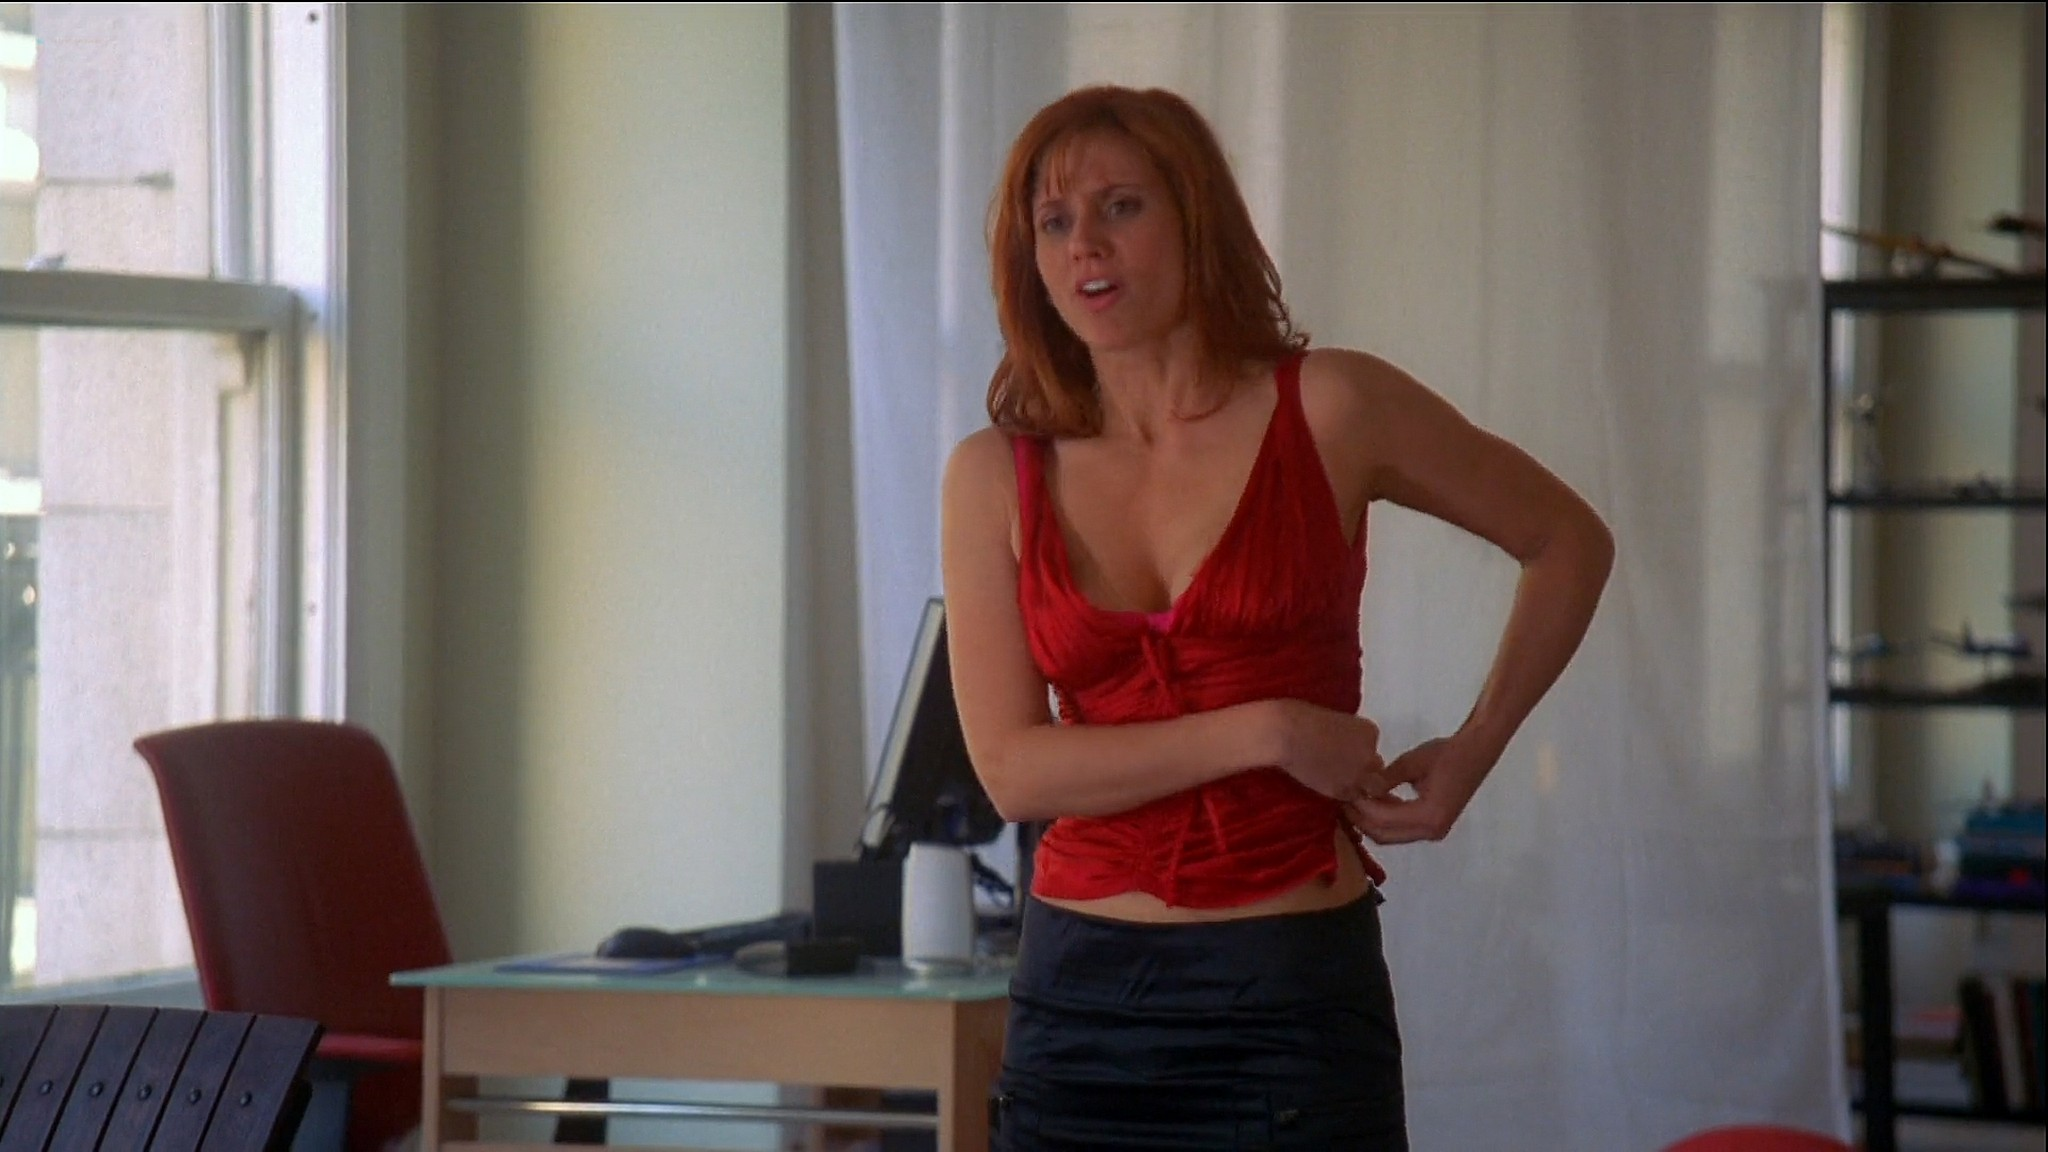 Kristen Miller hot and sex Allison Lange Brooke Burns sexy and some sex too Single White Female 2 2005 1080p Web 8